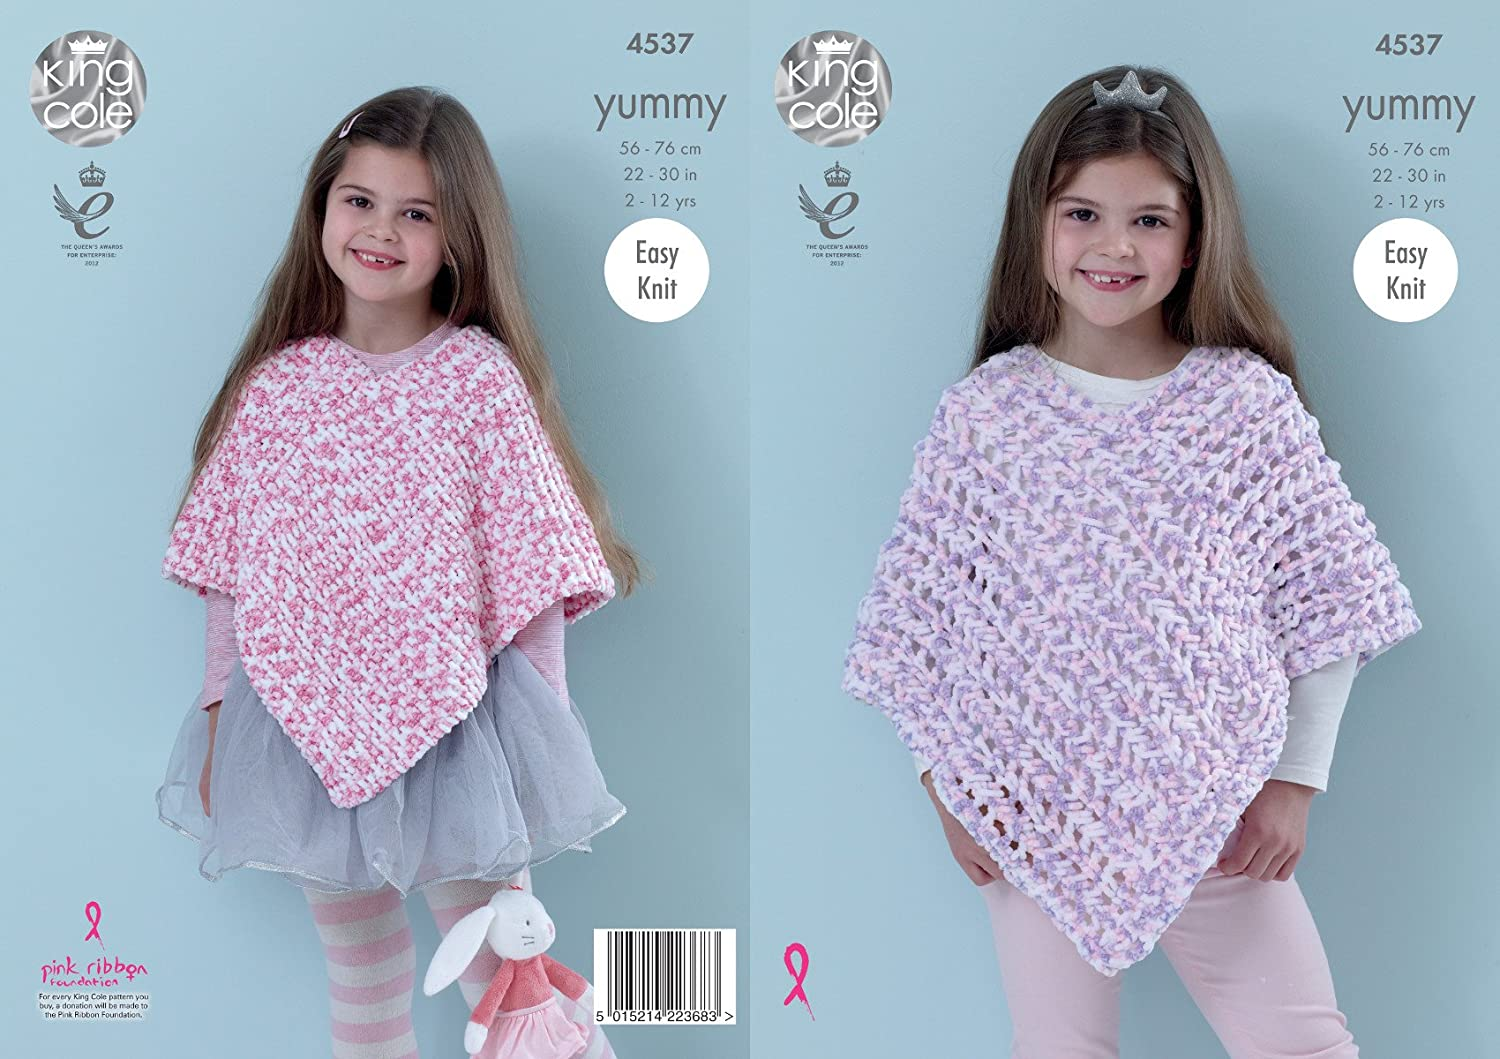 King Cole Girls Knitting Pattern Easy Knit Garter Stitch or Lace Ponchos Yummy Chunky (4537) by King Cole